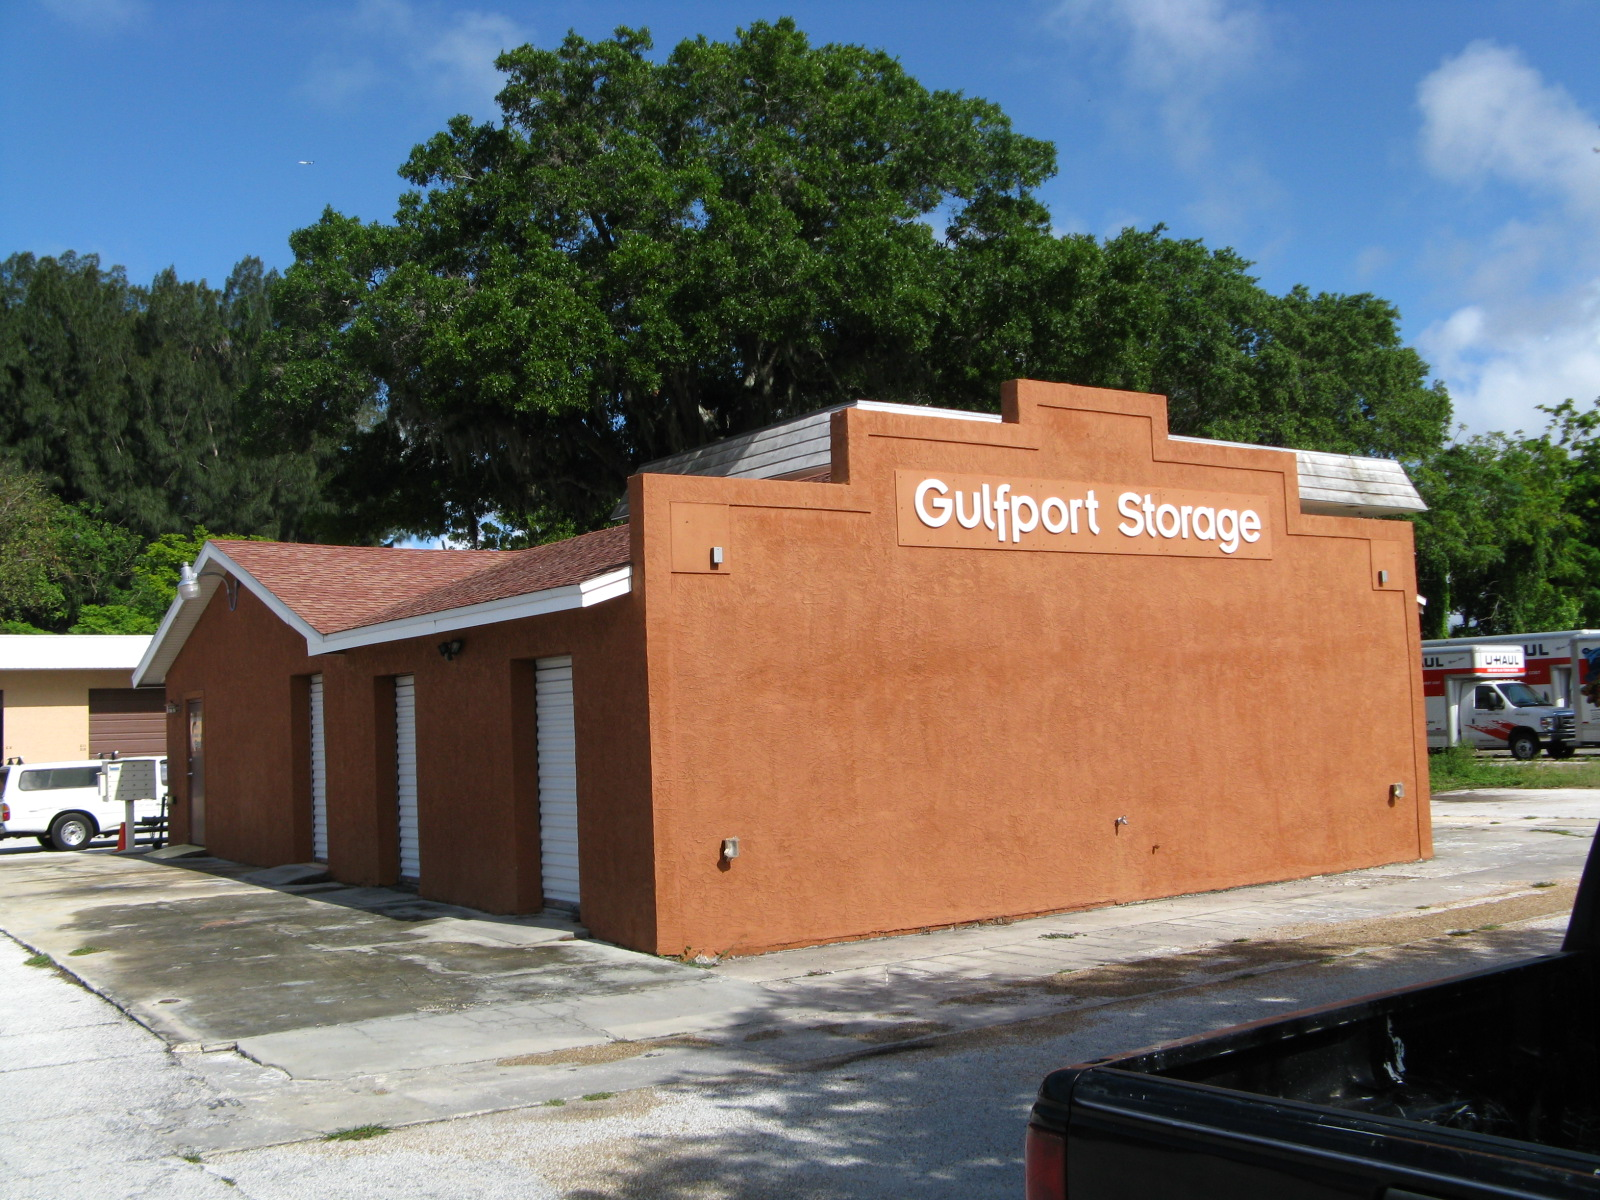 Gulfport Storage In Gulfport Fl 727 321 9